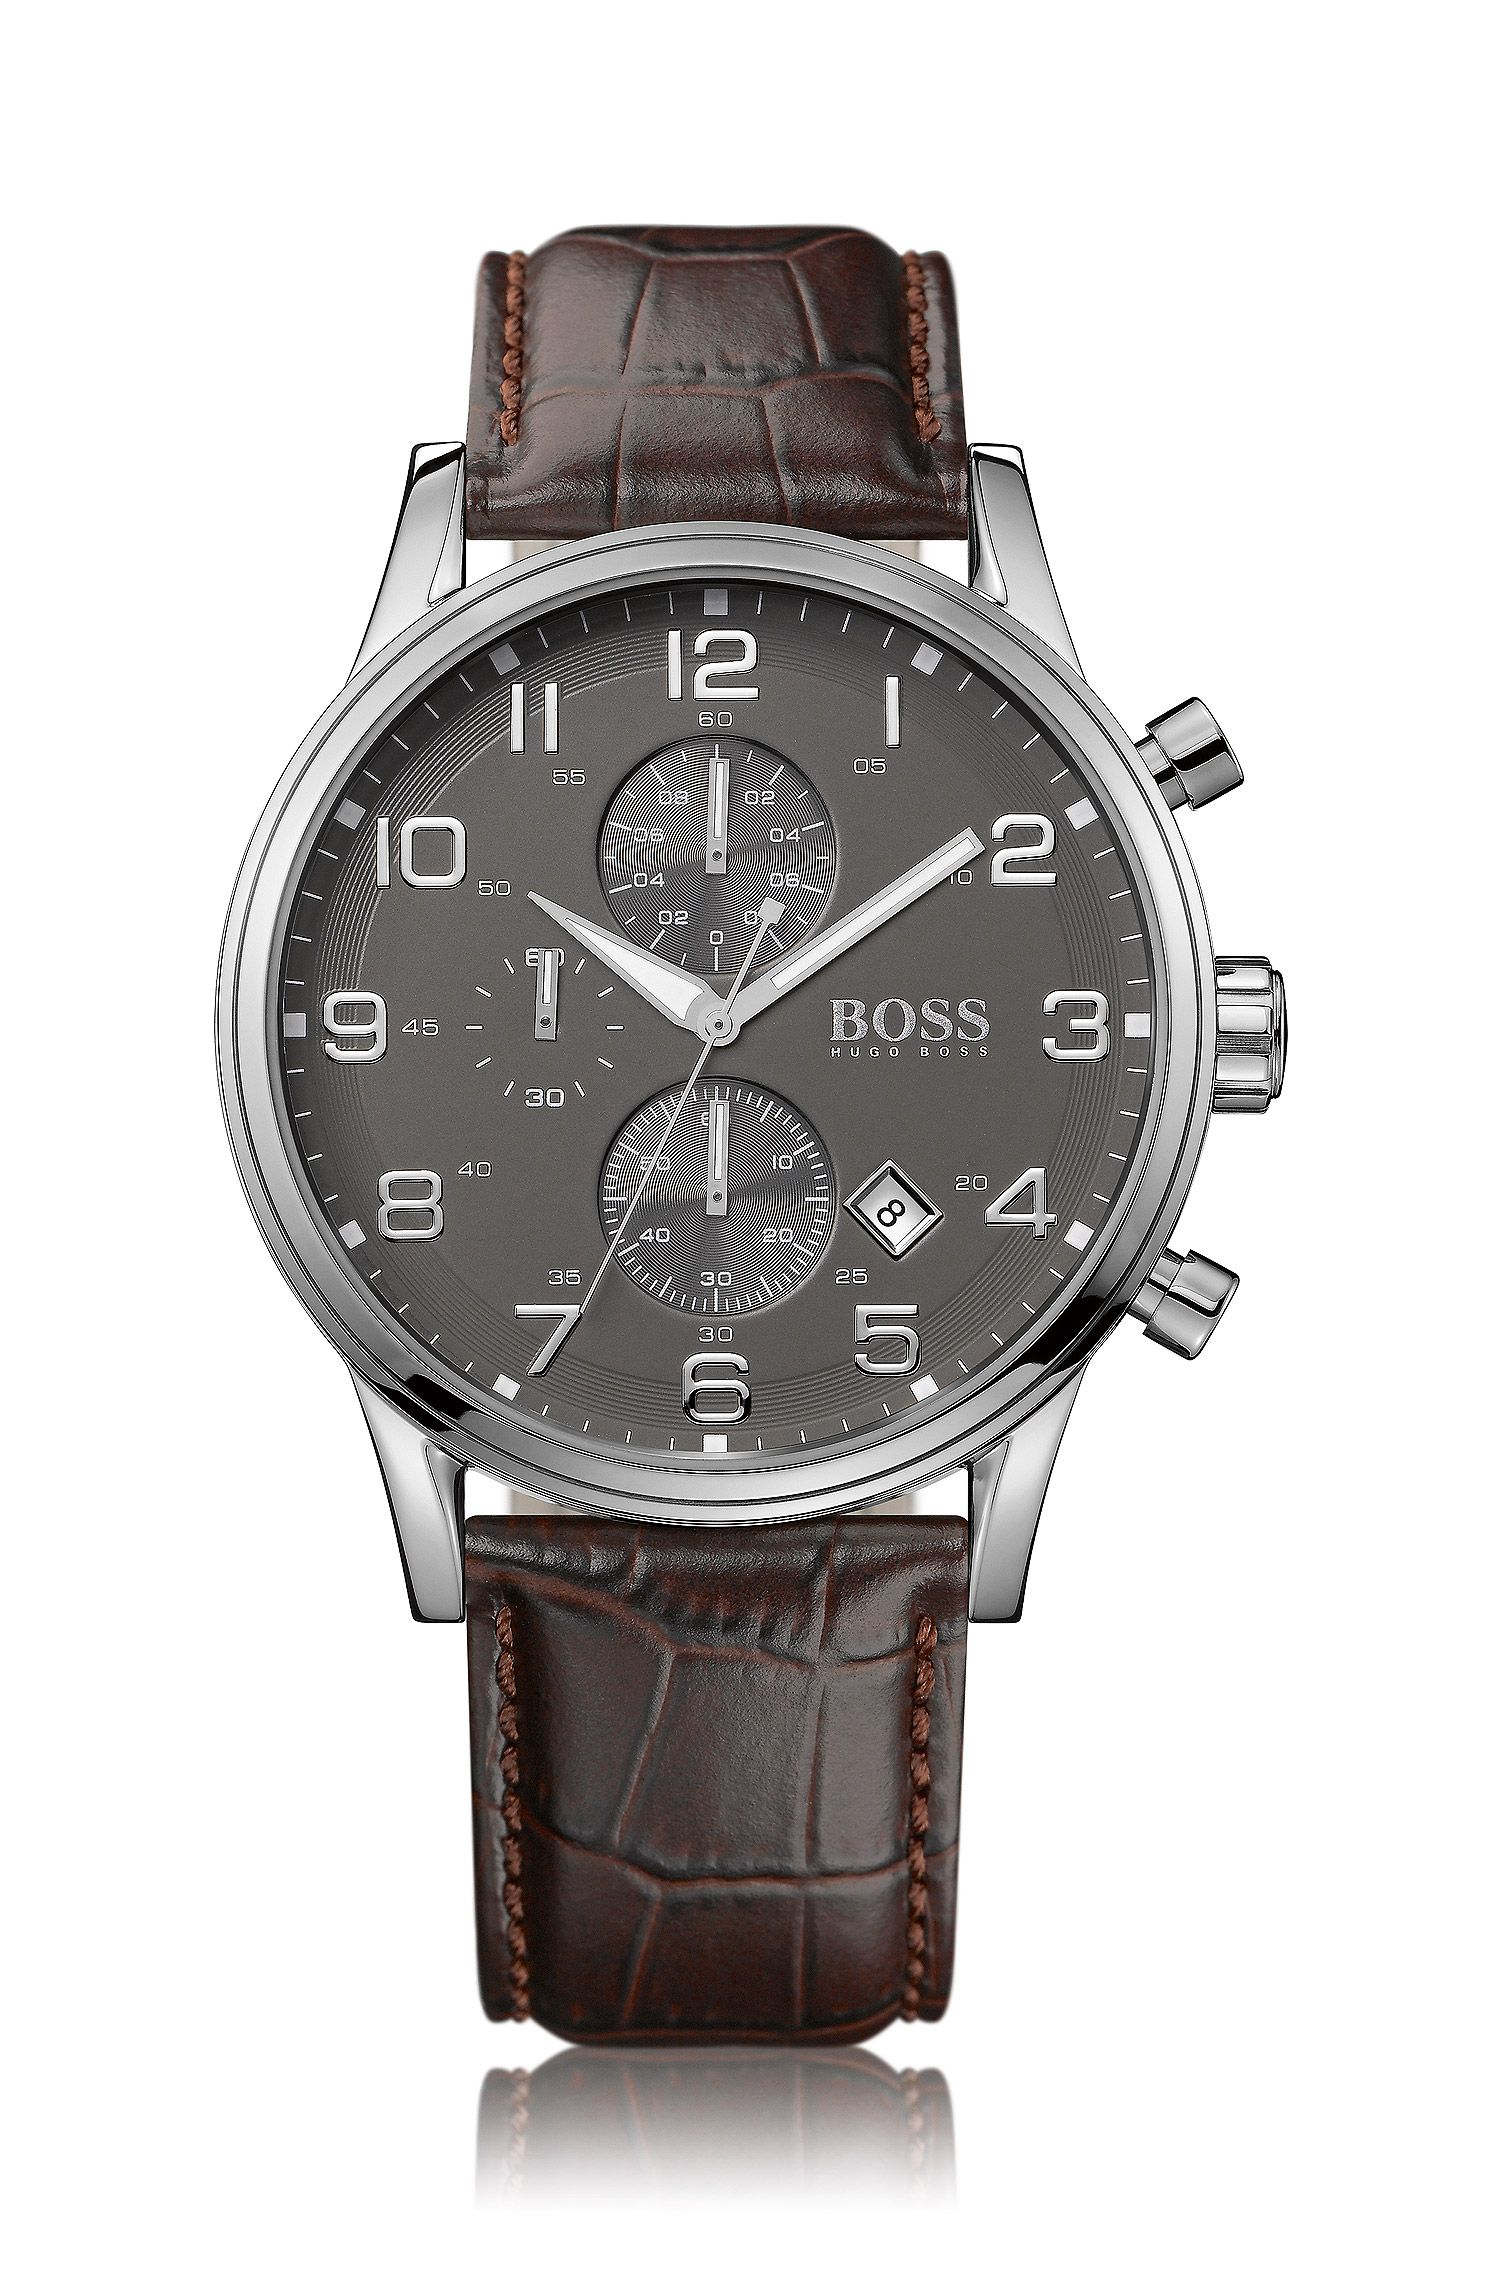 Chronograph 'HB2006' with a leather strap